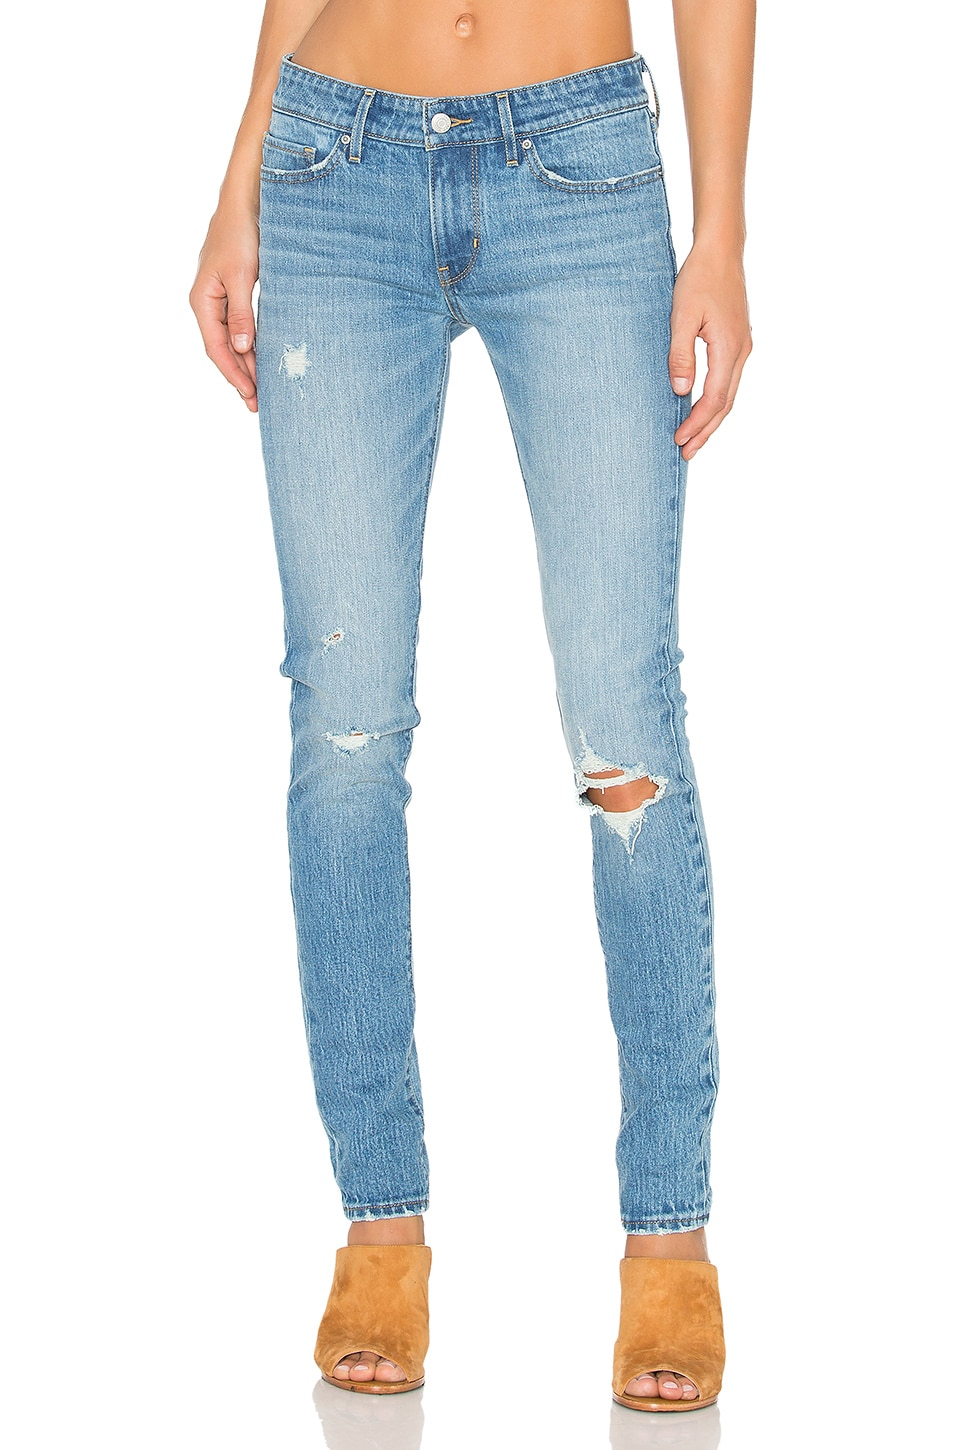 LEVI'S 711 Skinny in Goodbye Heart